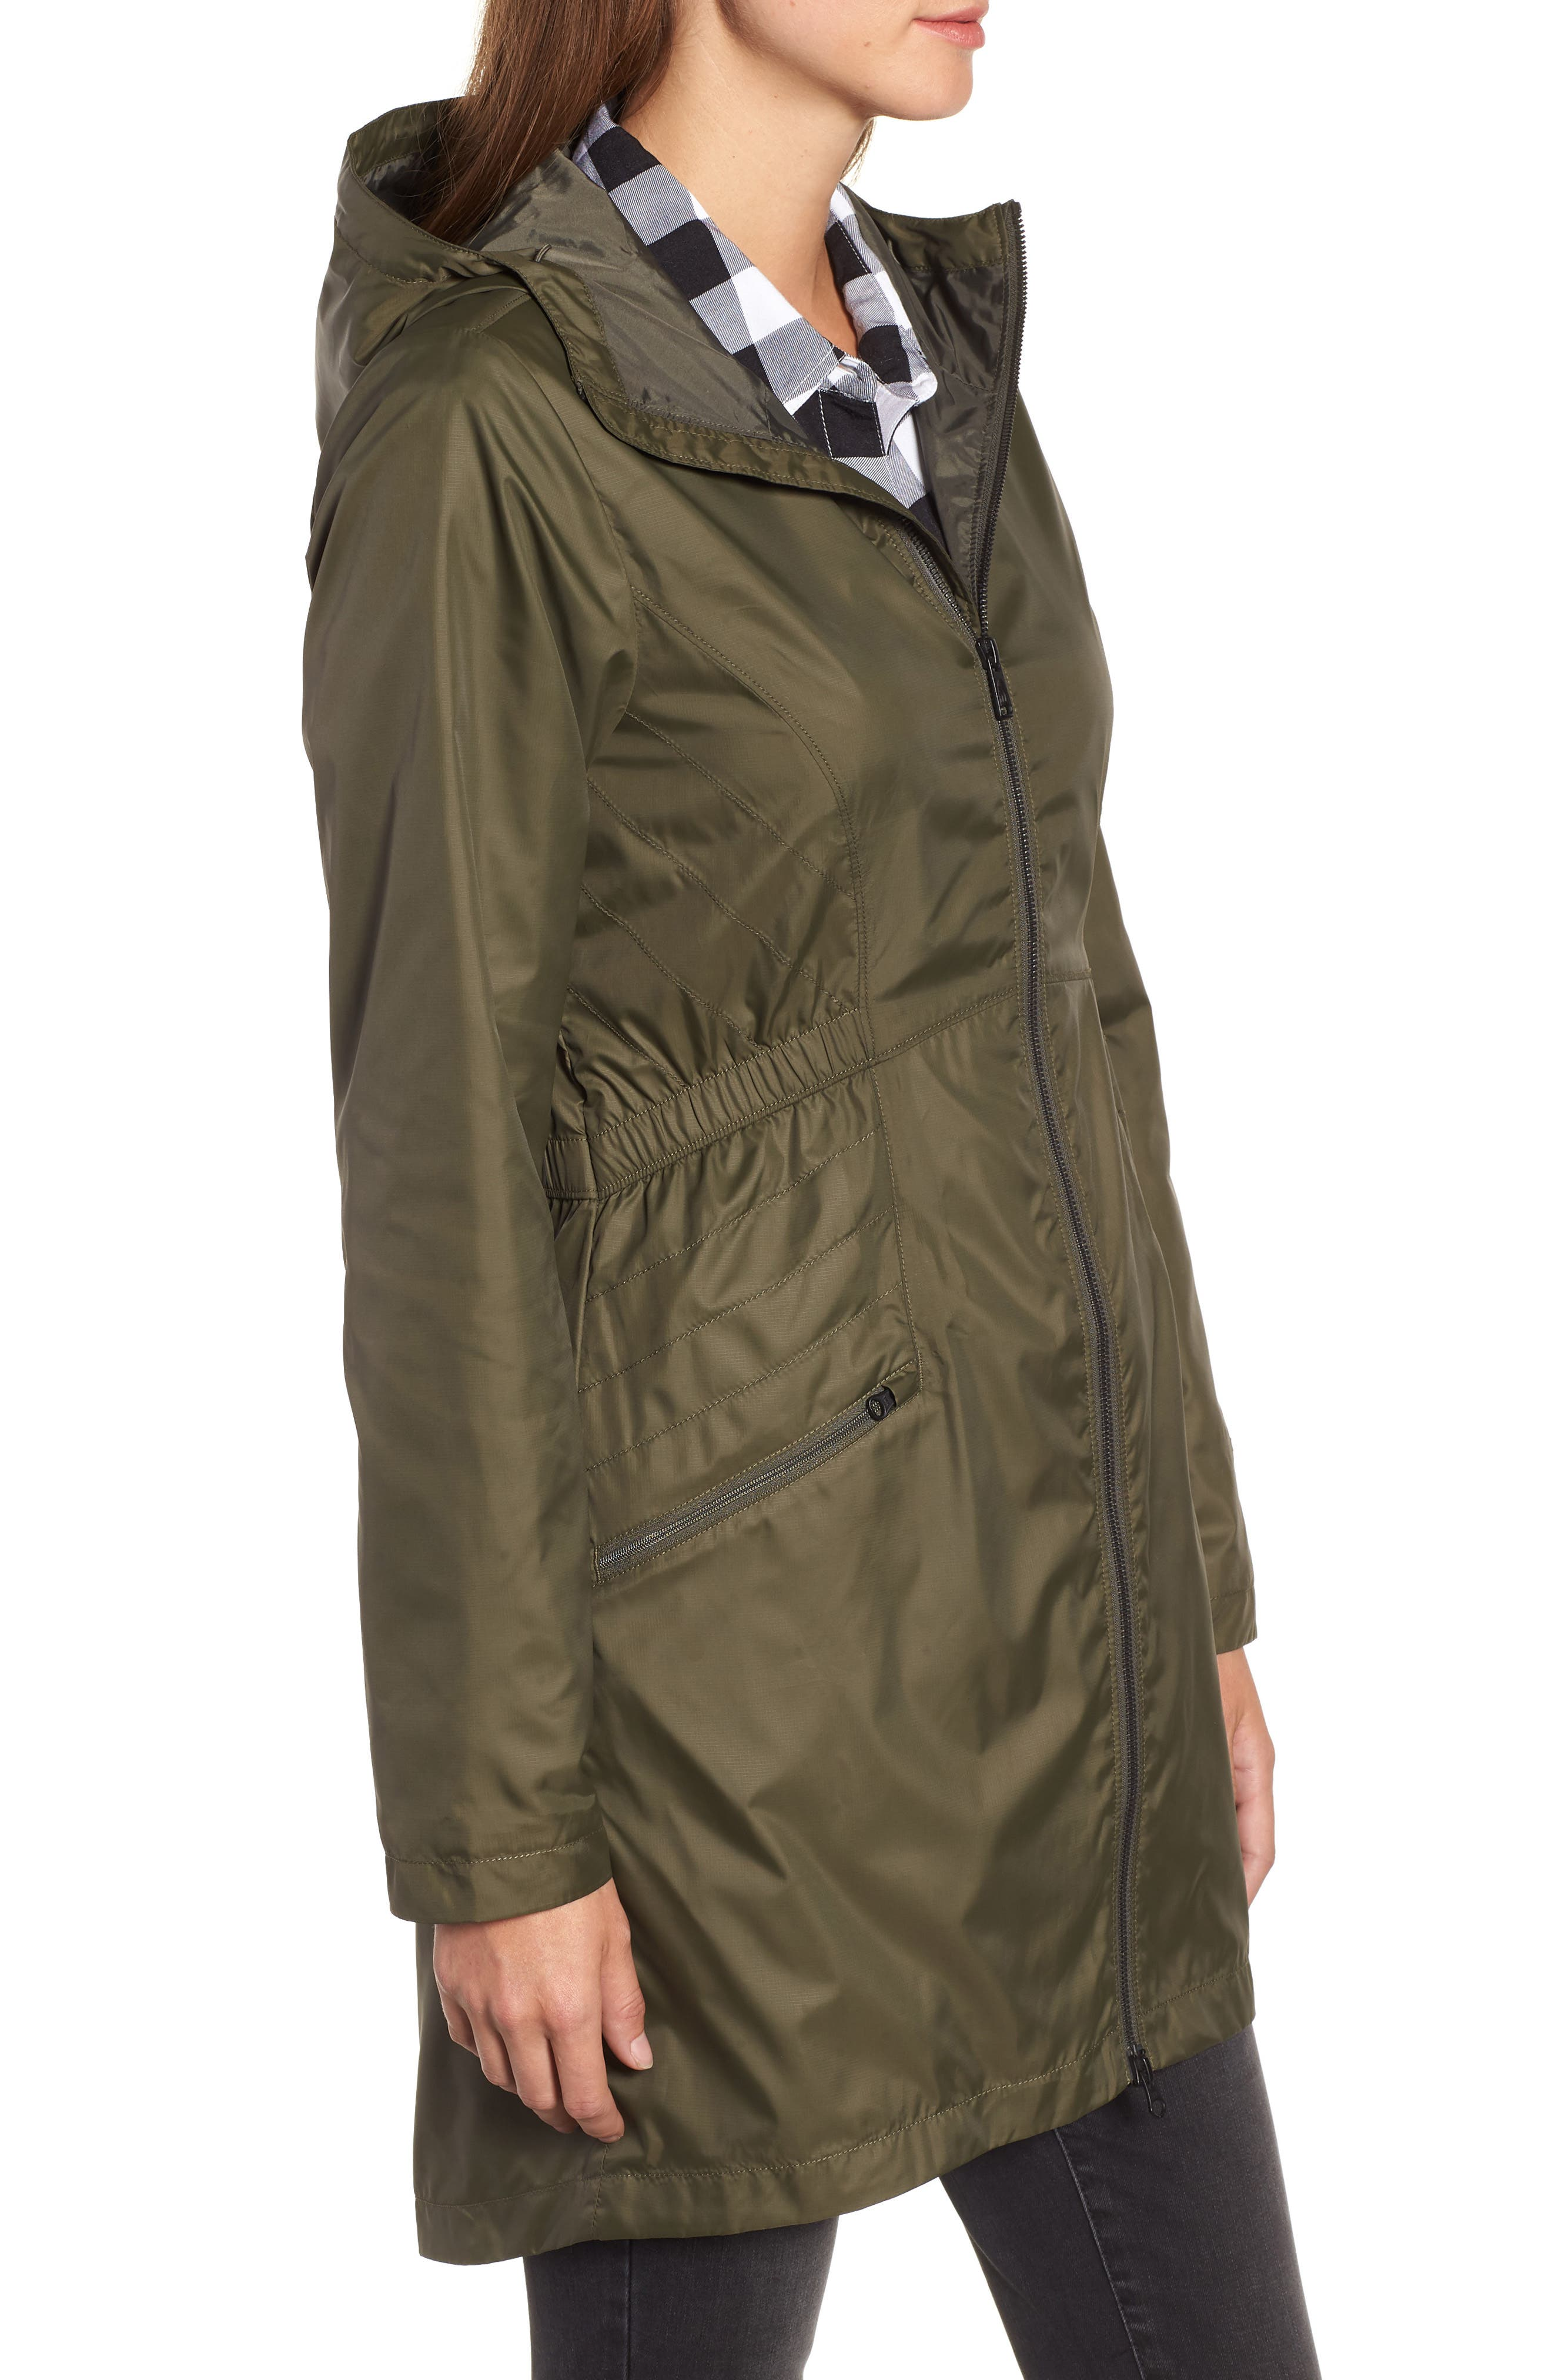 THE NORTH FACE, Rissy 2 Wind Resistant Jacket, Alternate thumbnail 4, color, 302